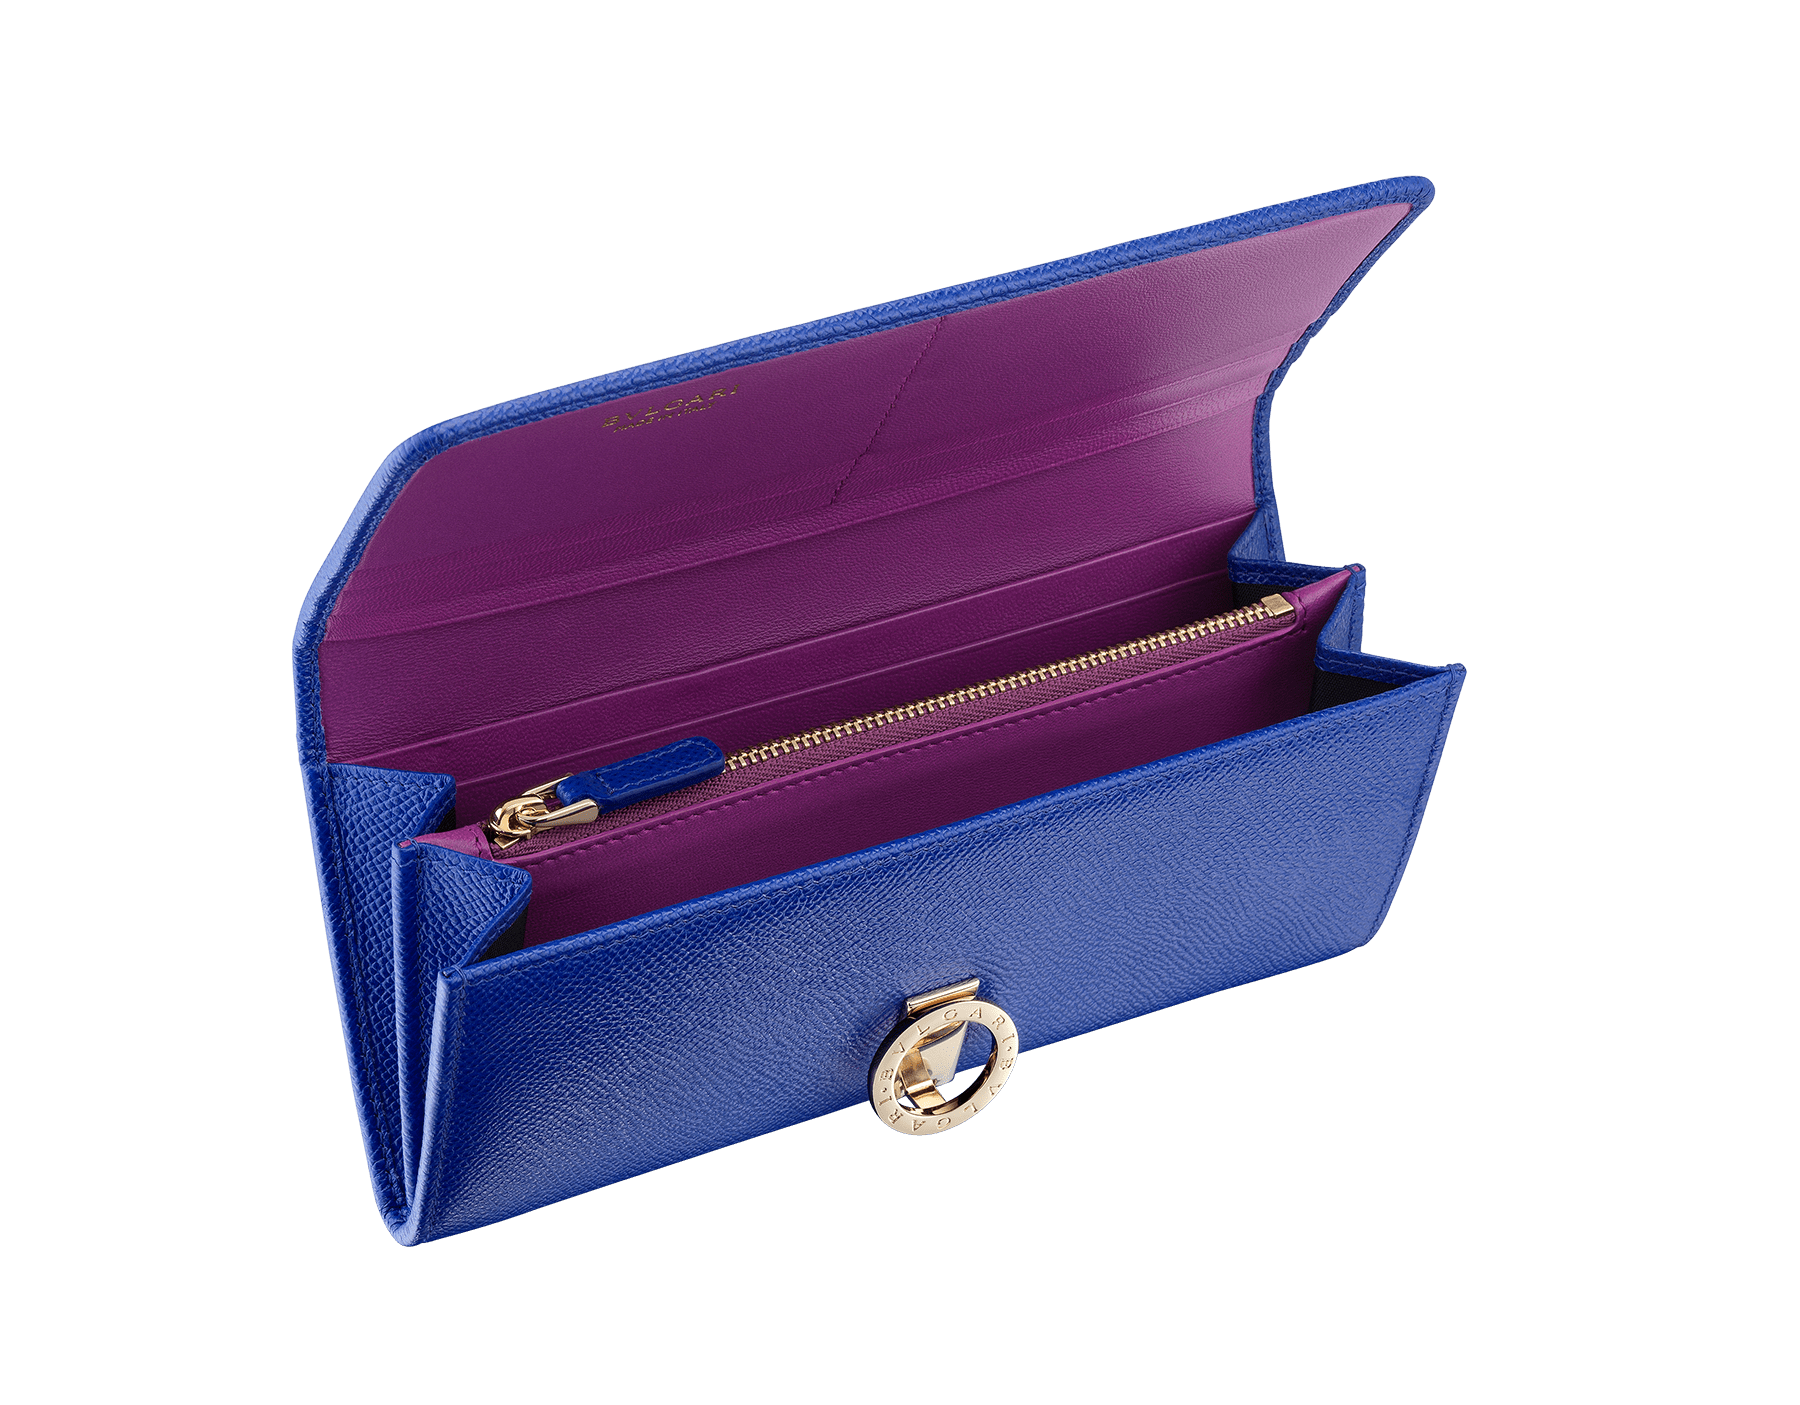 BVLGARI BVLGARI wallet pochette in cobalt tourmaline grain calf leather and aster amethyst nappa leather. Iconic logo closure clip in light gold plated brass 287299 image 2